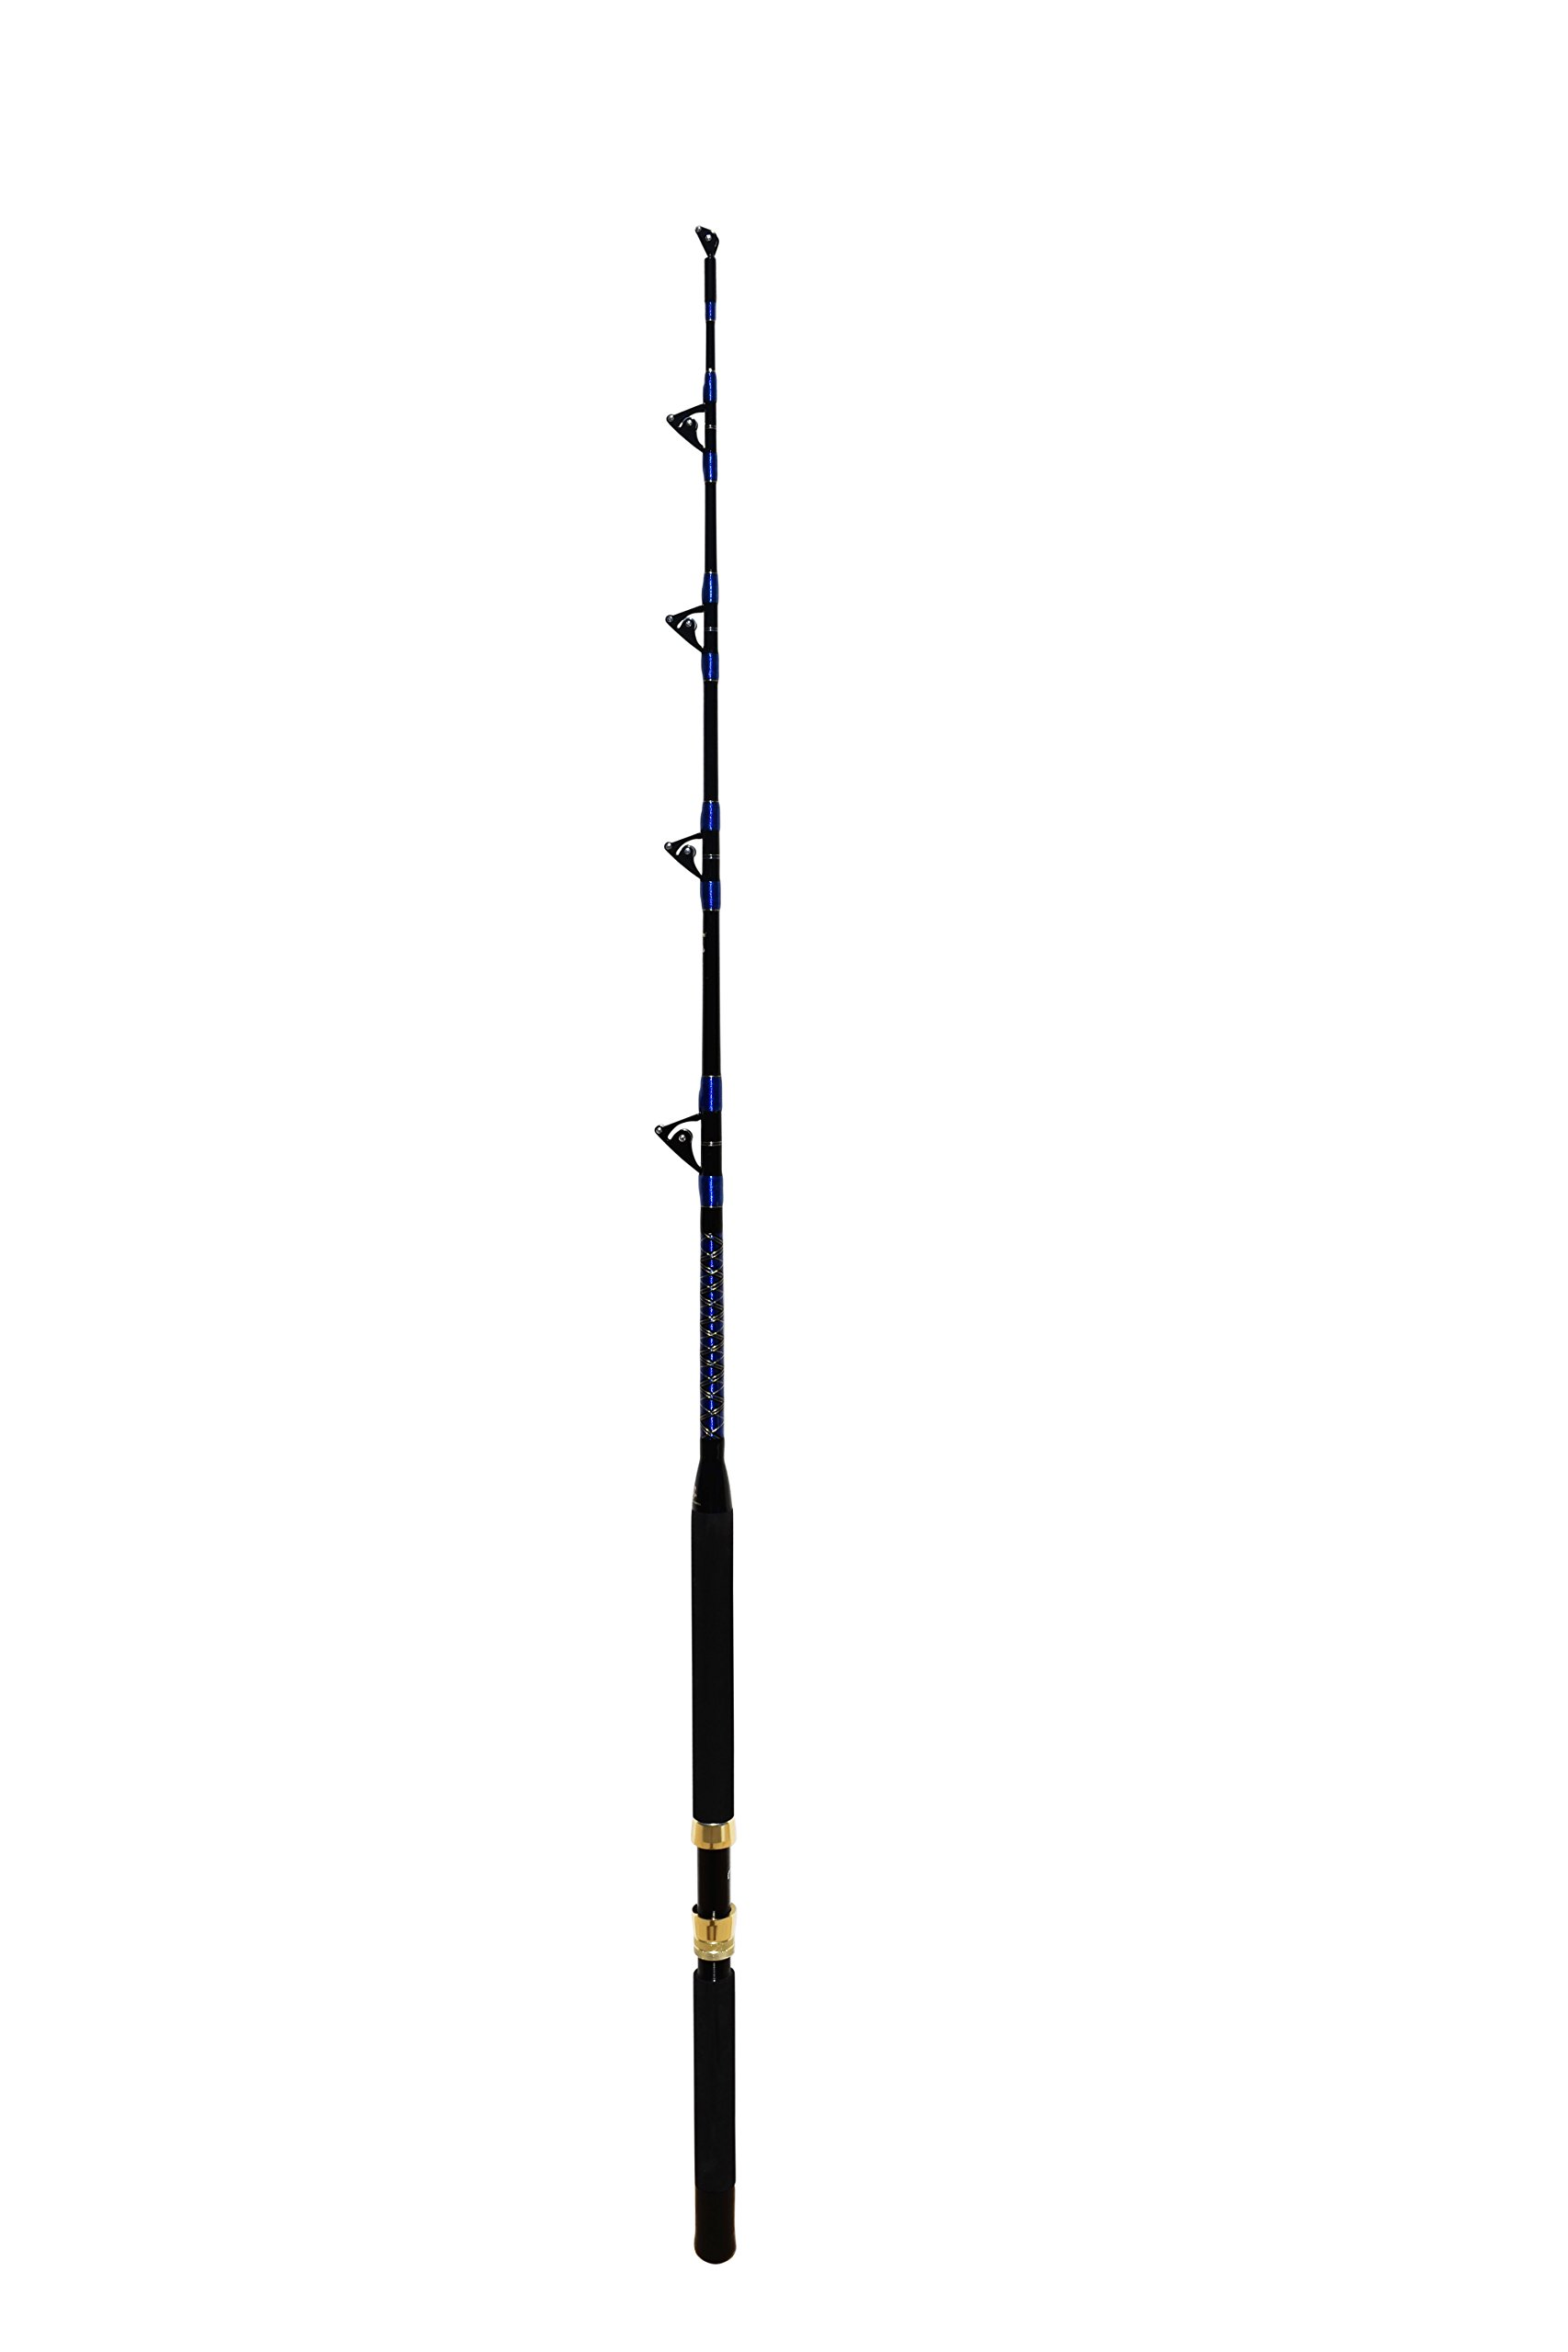 EAT MY TACKLE Saltwater Fishing Rod all Roller Guides, Fishing Pole, 150-180 Lb